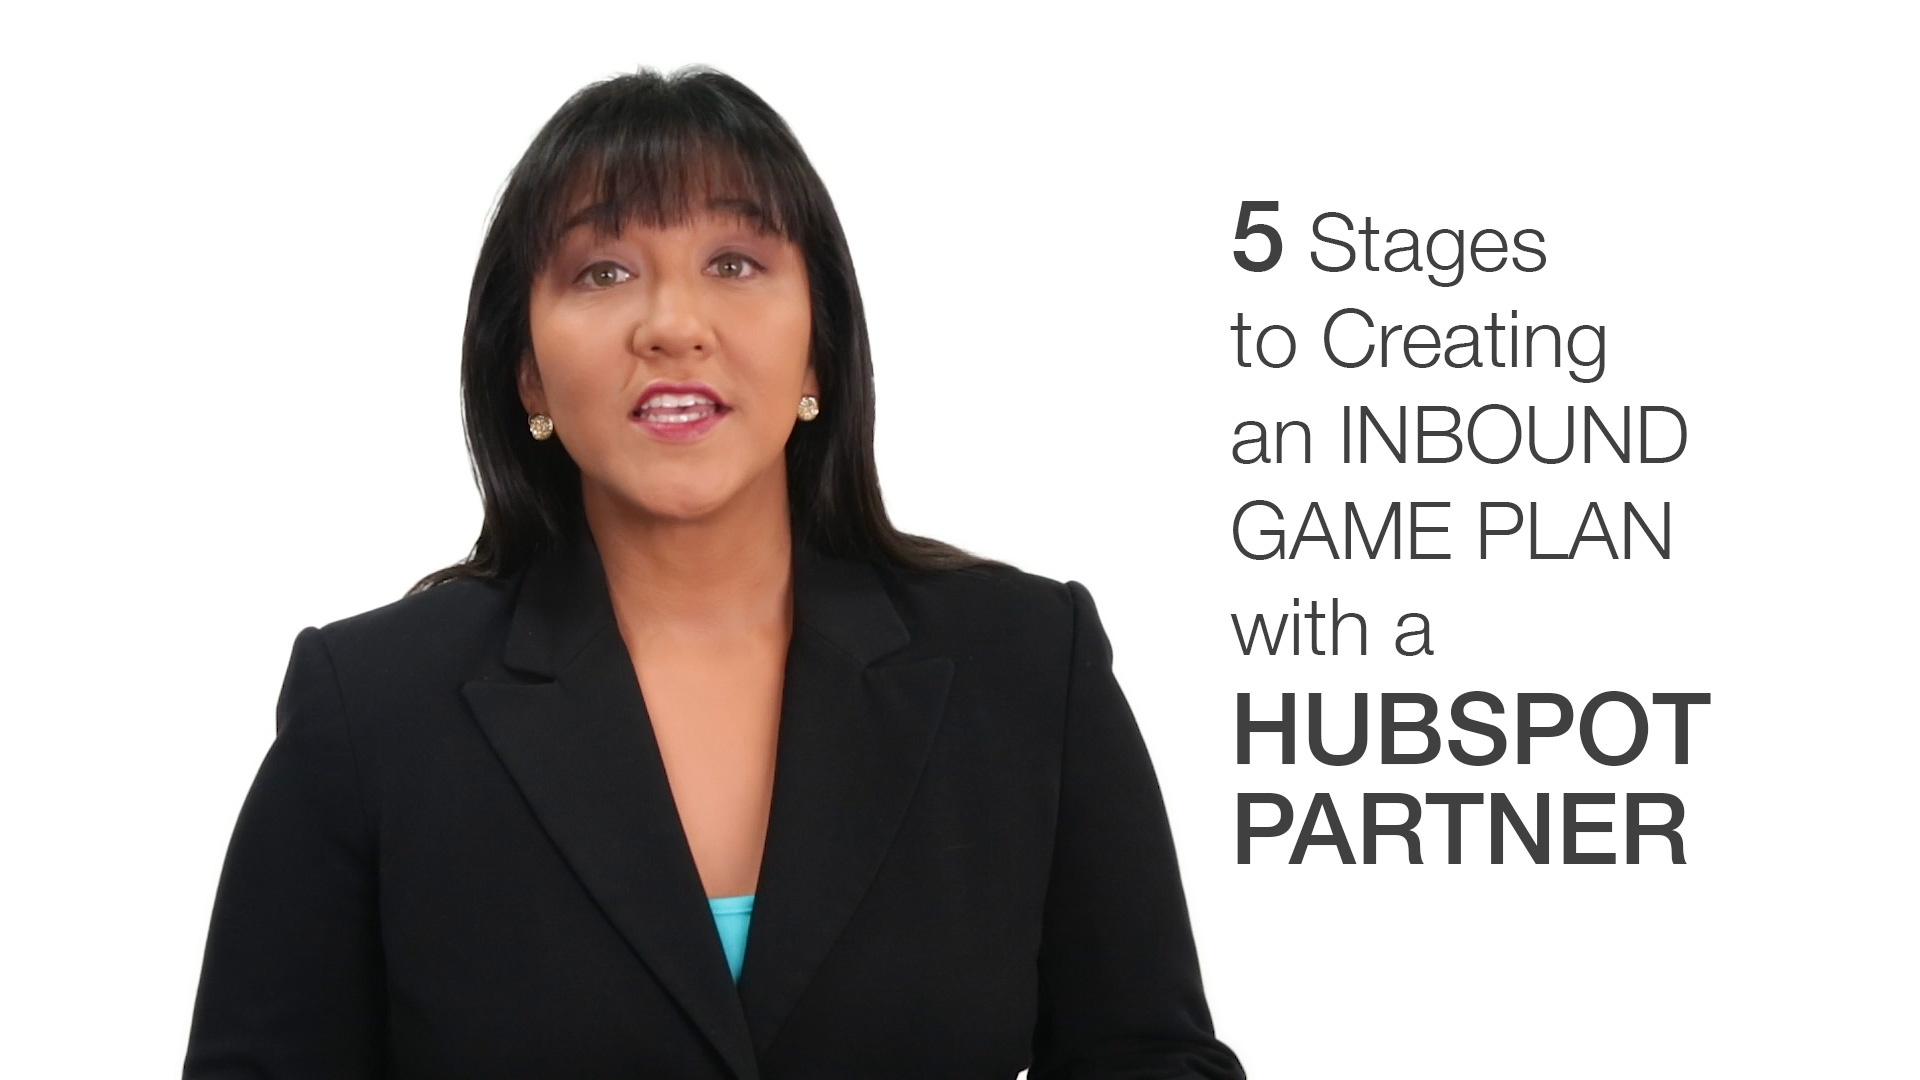 Wistia video thumbnail - Create_Inbound_Hubspot_Partner-Wistia